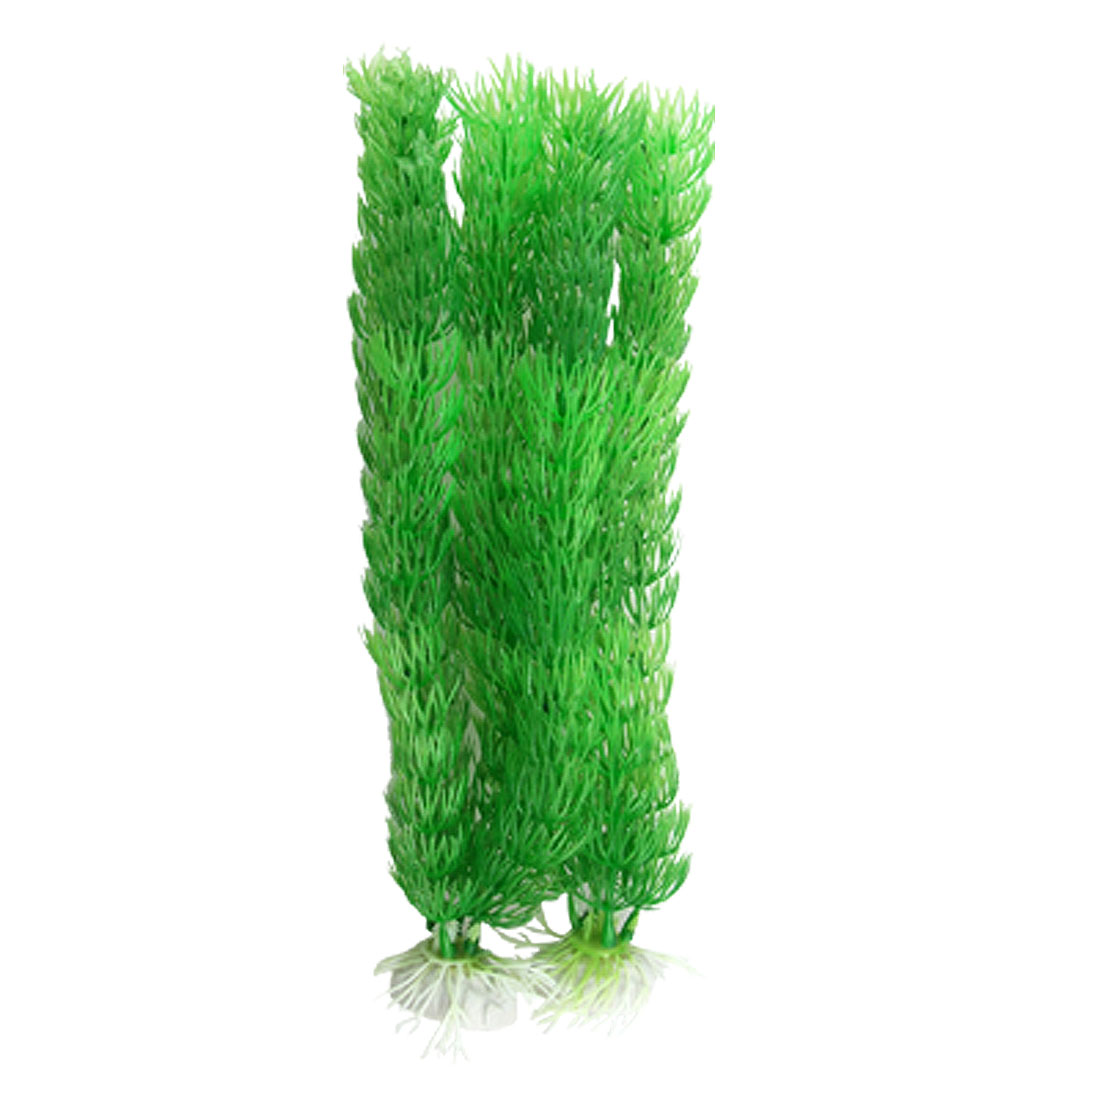 Green Plastic Ceratophyllum Plants Fish Tank Aquarium Ornament 2 Pcs